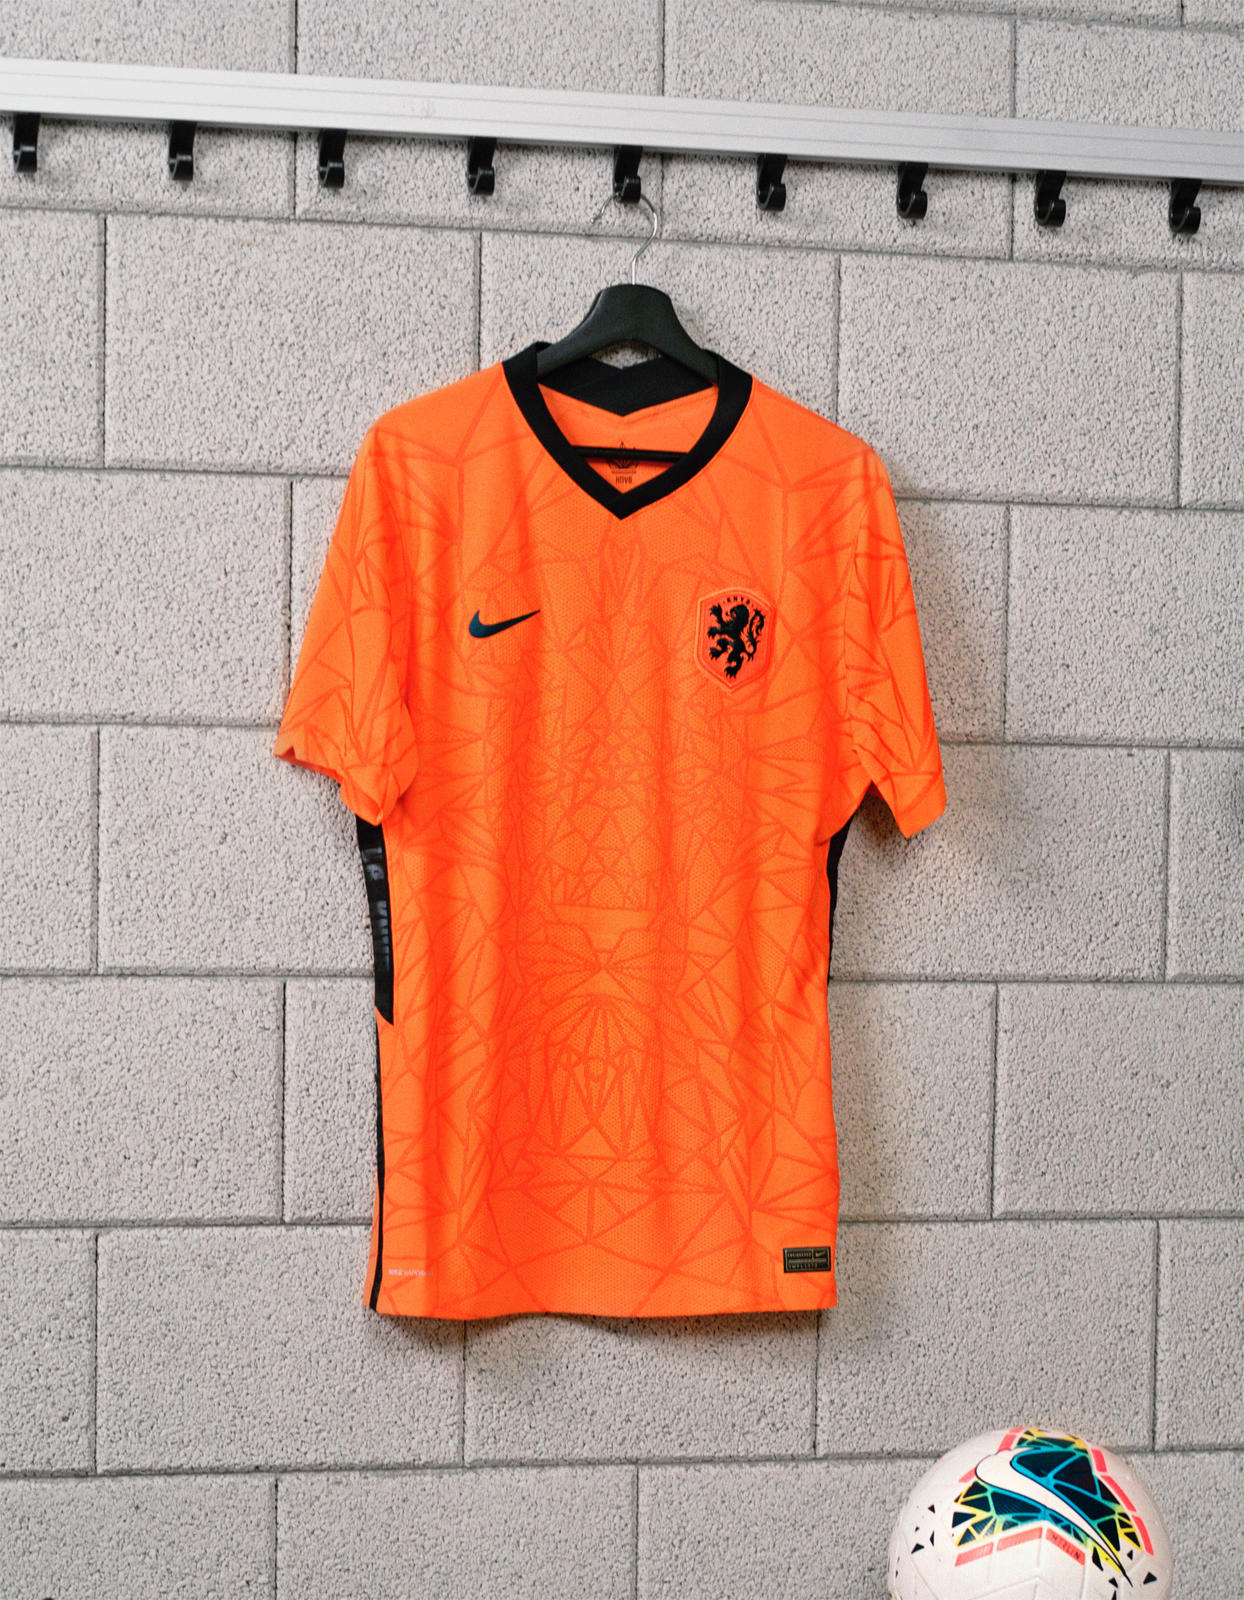 The Netherlands celebrates strength and bravery in new Nike collection 0